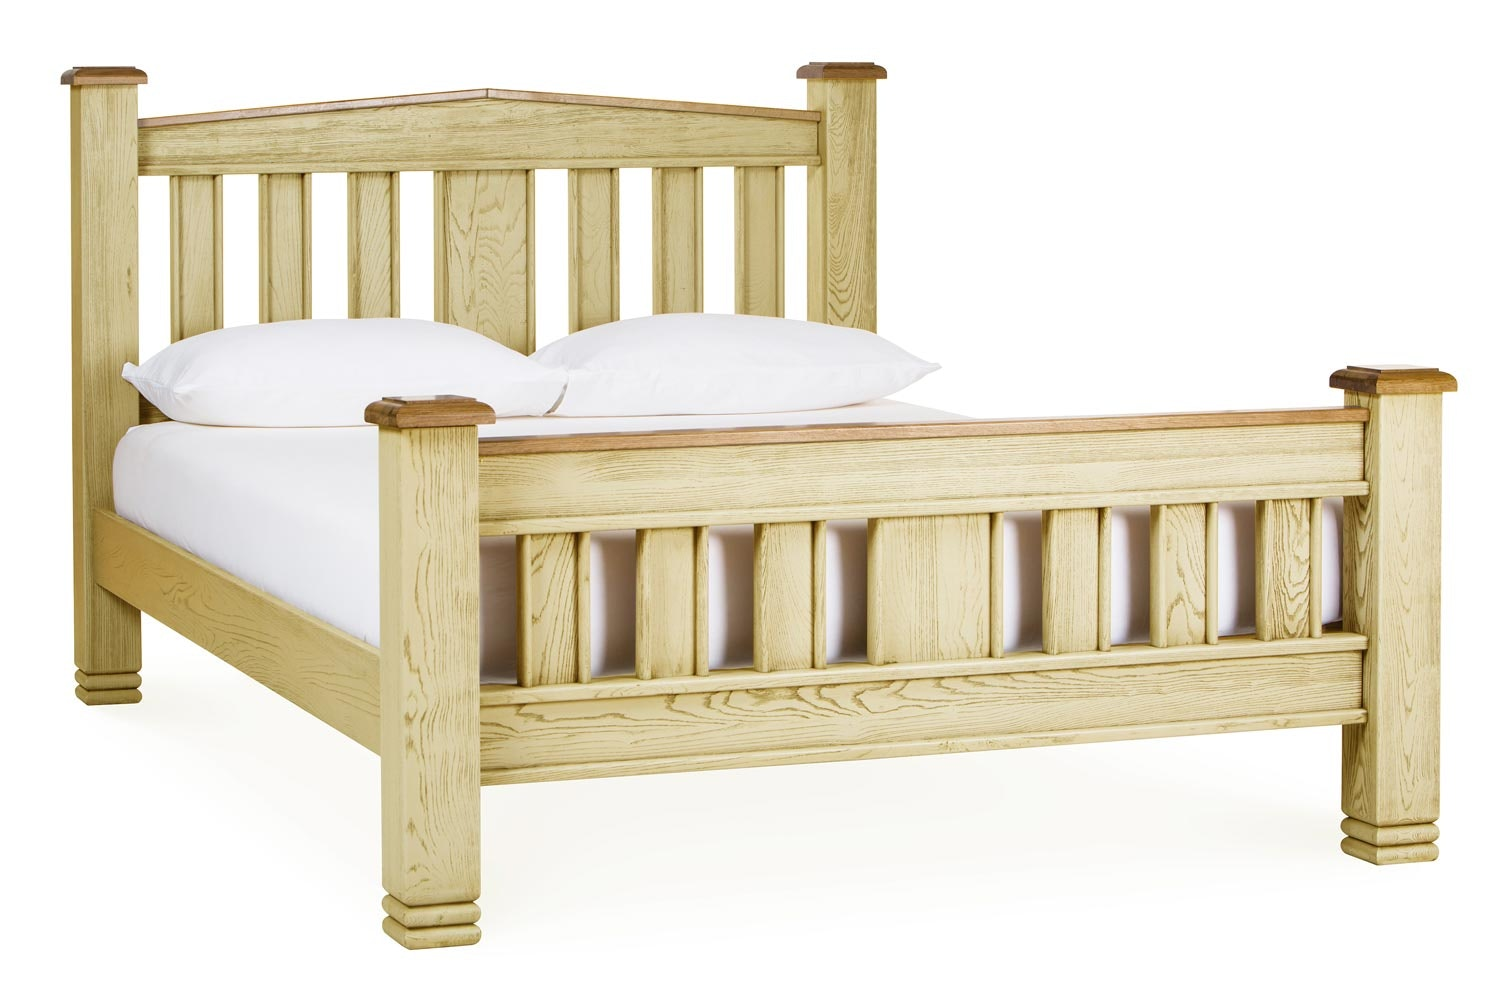 Lancaster Bed Frame | 4ft6 | Aged Cream/Oak